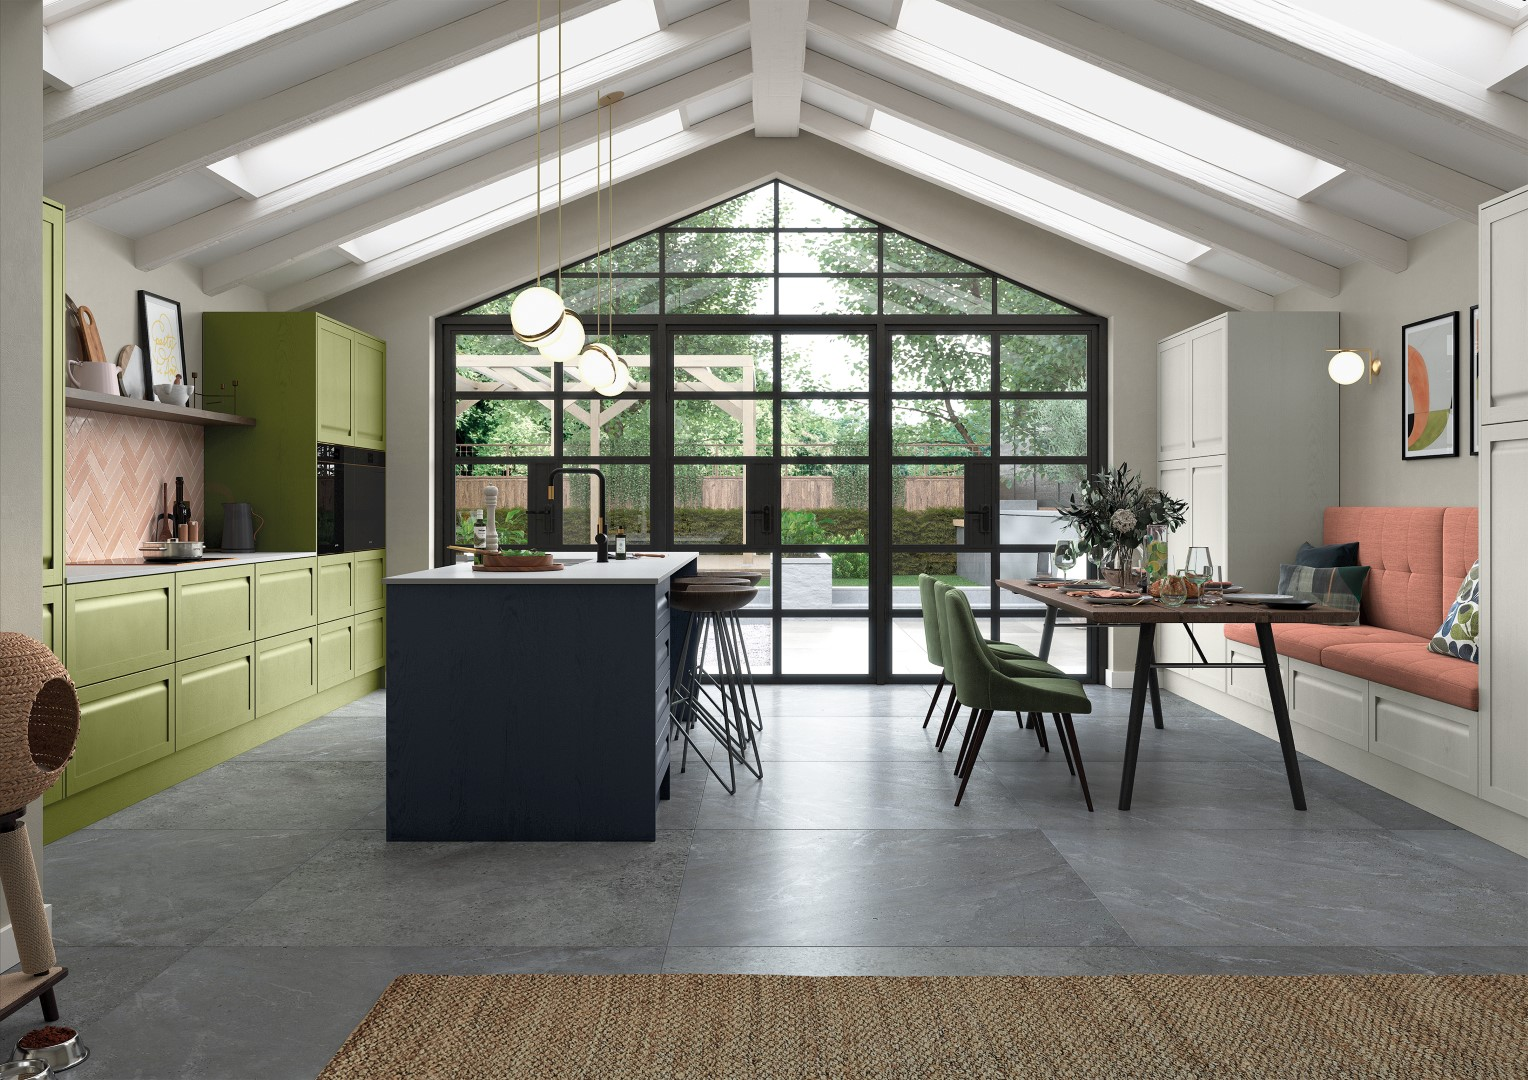 Harborne Slate Blue, Stone and Citrus Green - Kitchen Design - Alan Kelly Kitchens - Waterford - 5